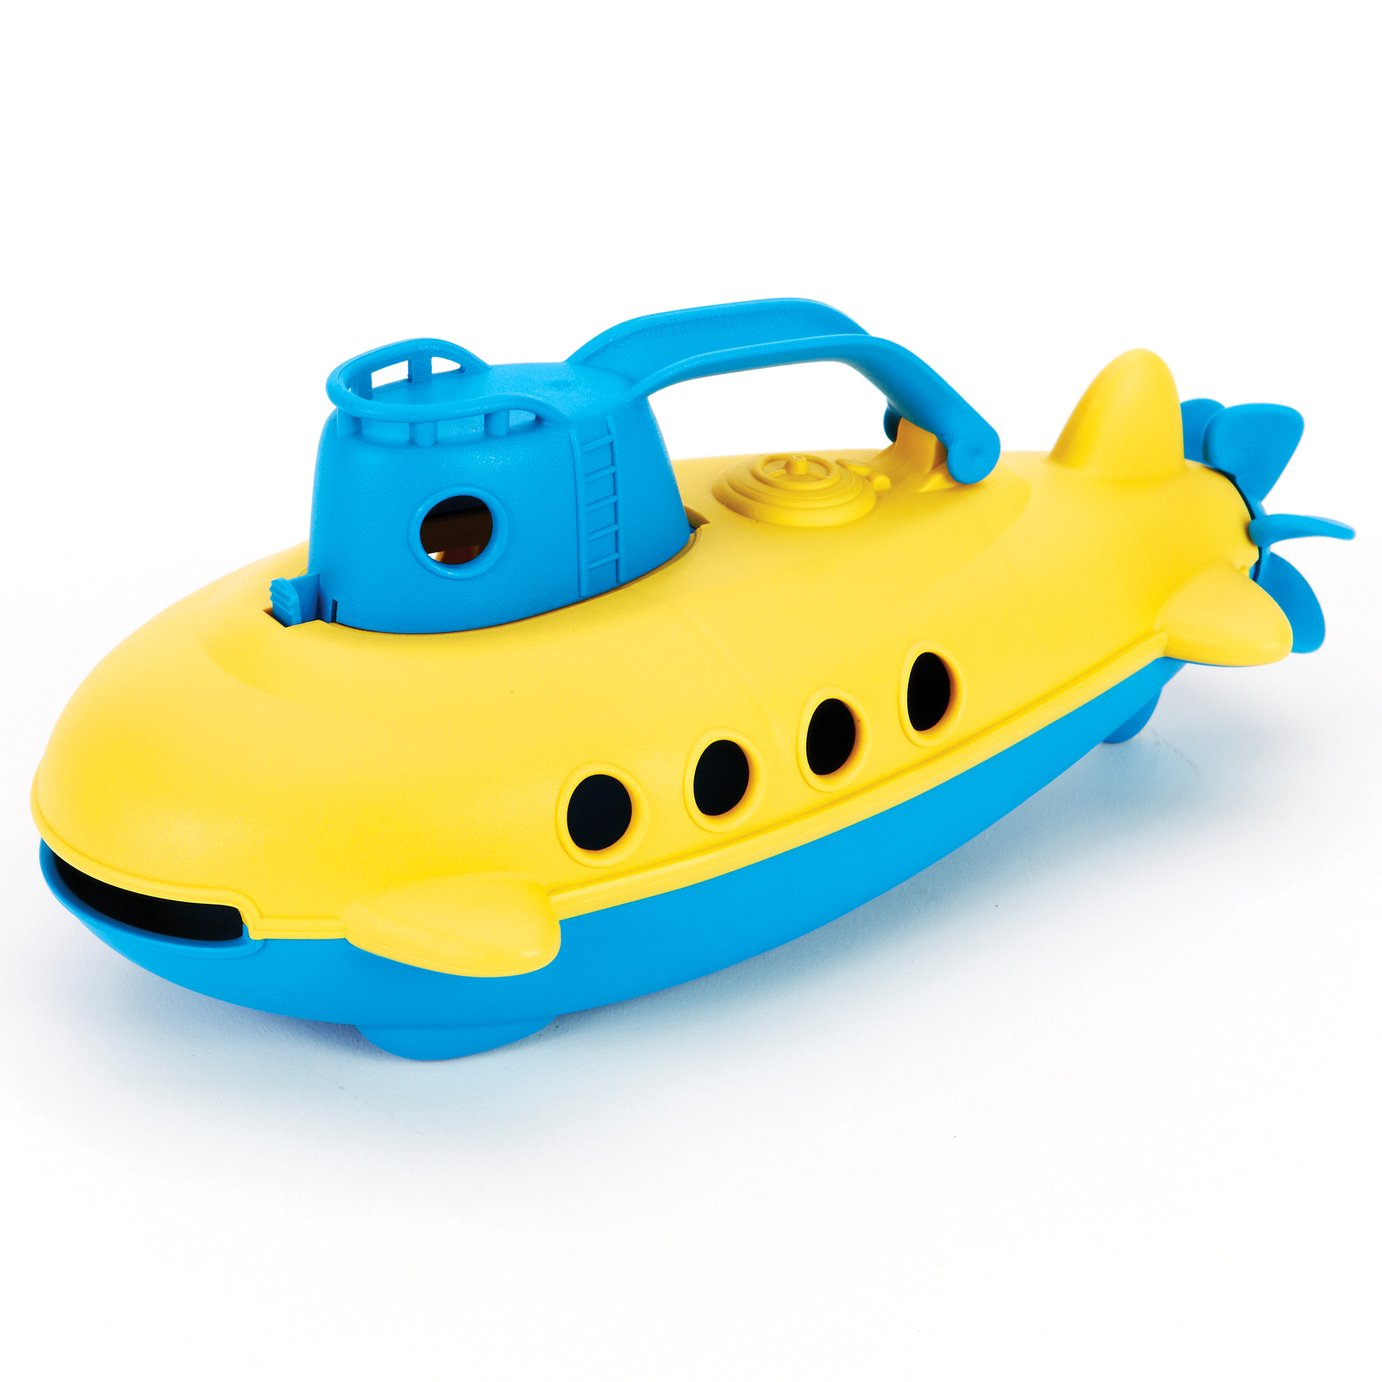 Green Toys Submarine Blue Handle Toy Boat